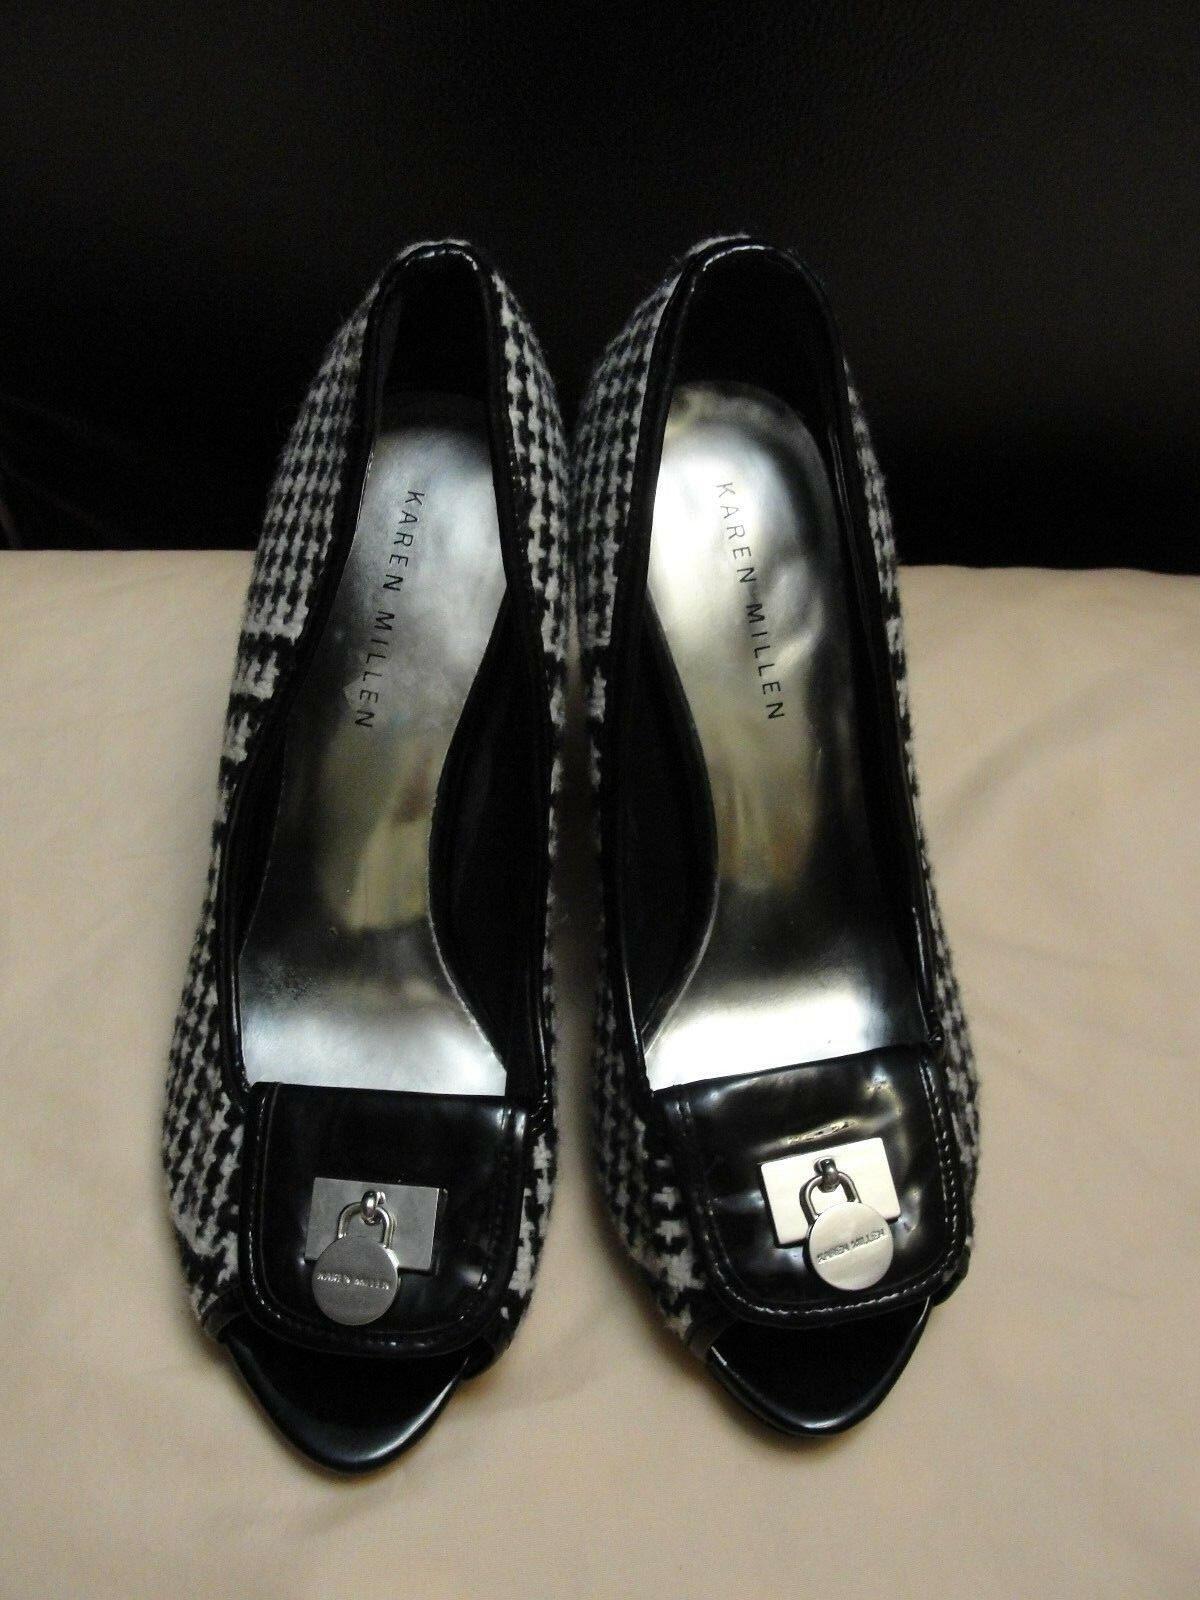 KAREN MILLEN SHOES - SIZE EUR 37